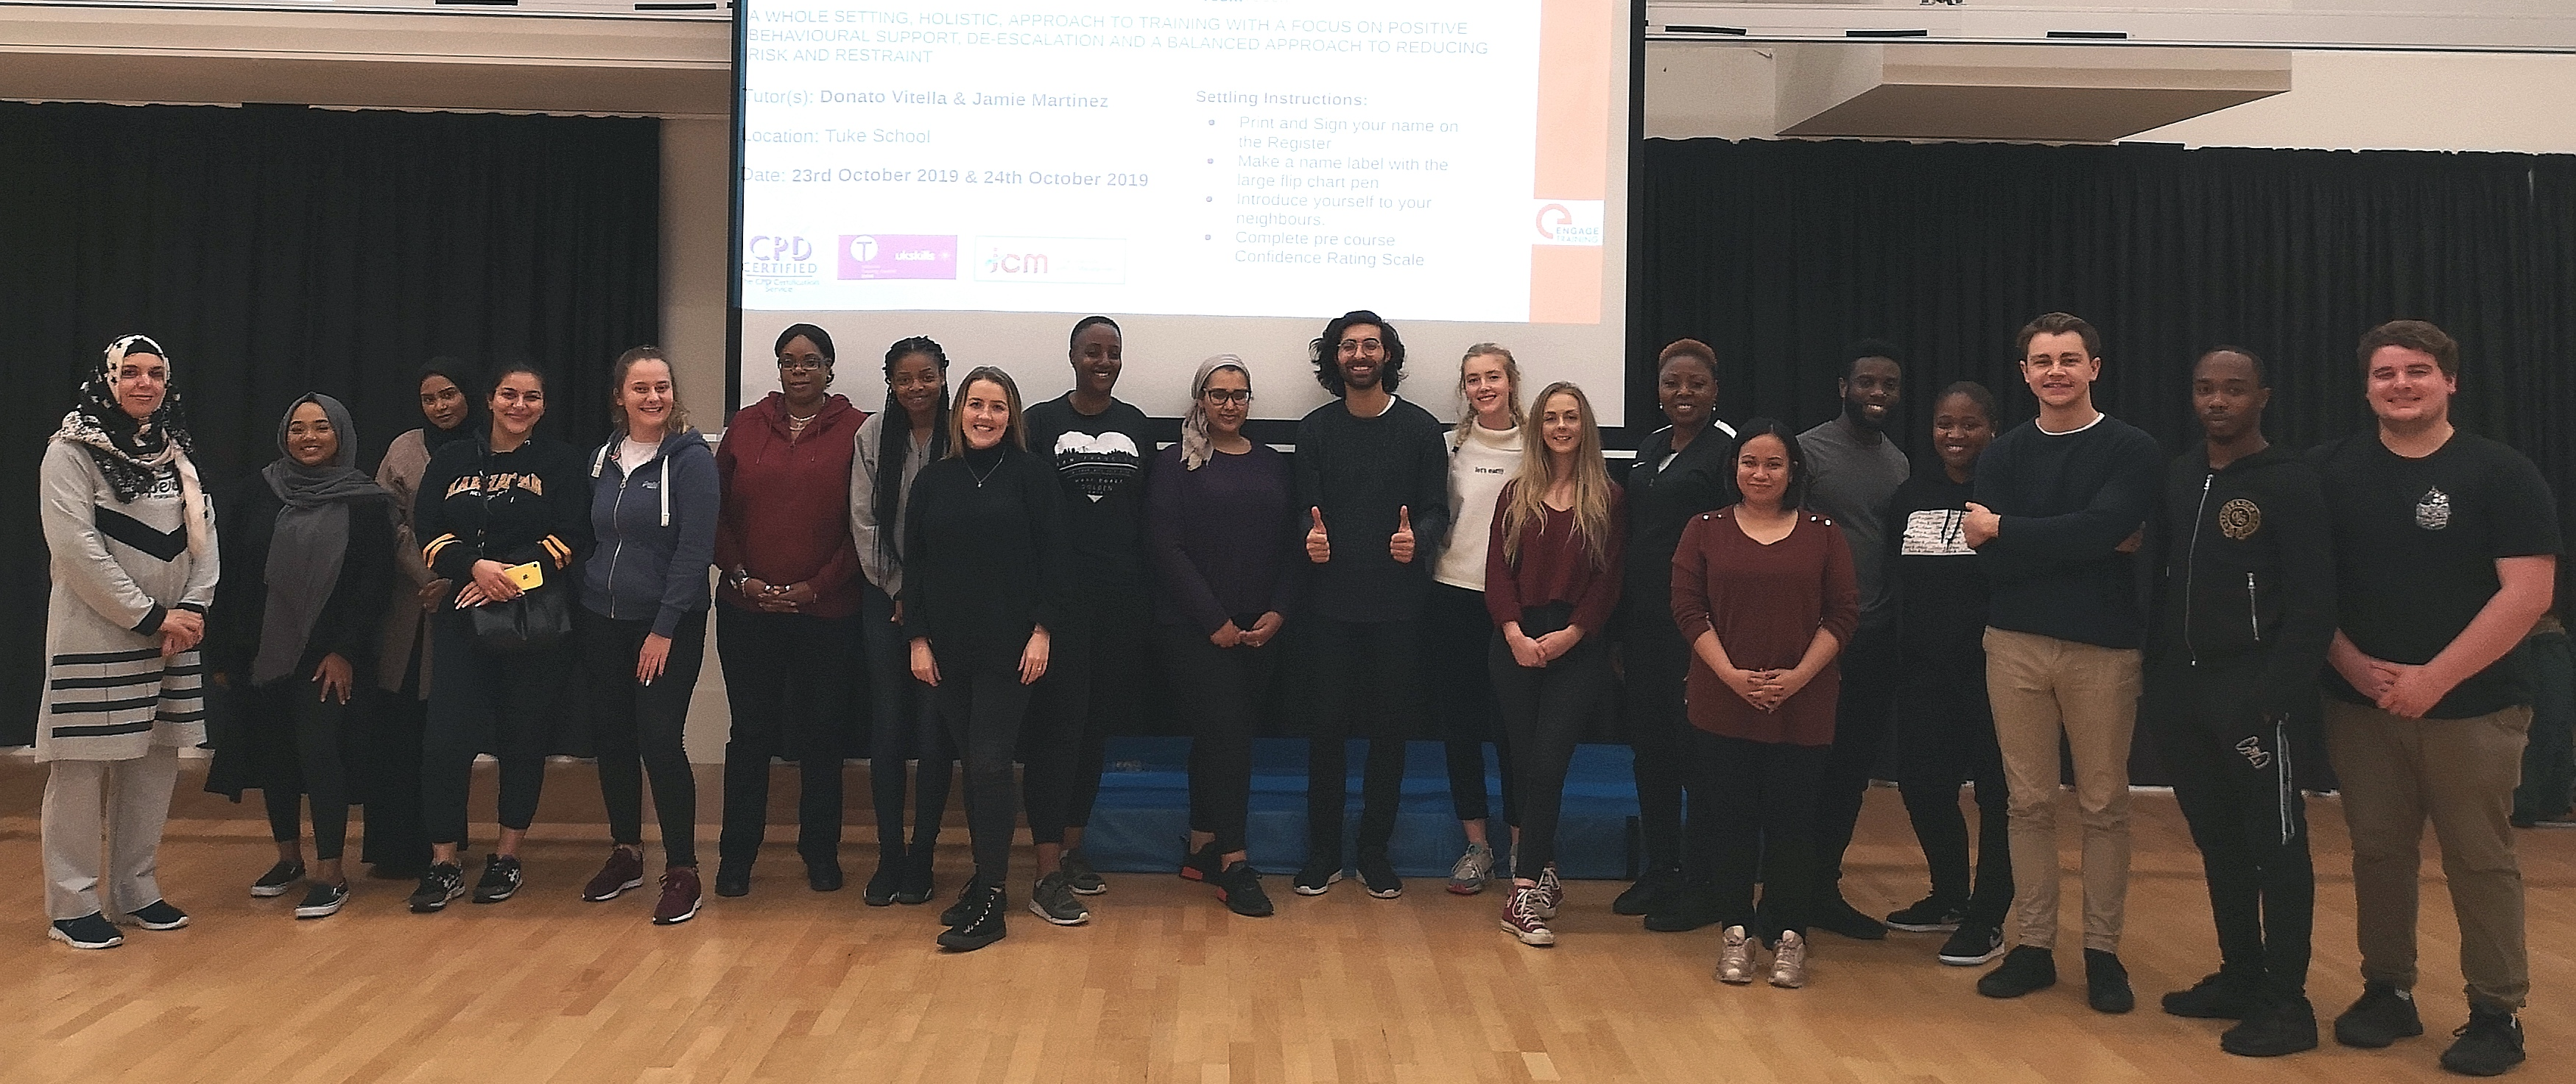 Team Teach - October 2019